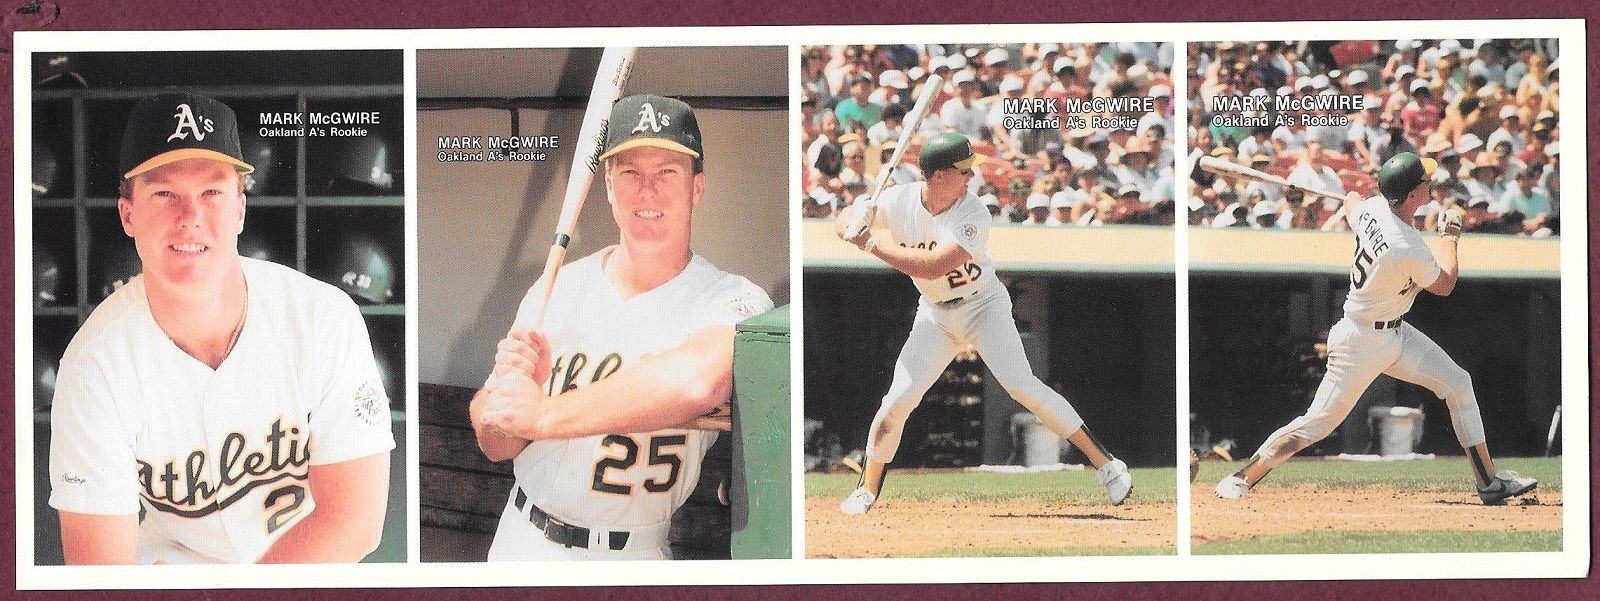 6d23792d47 Lo and behold, it appears that nearly every single-player set was available  in an uncut form, even as early as the 1987 and 1988 Mark McGwire Sets: